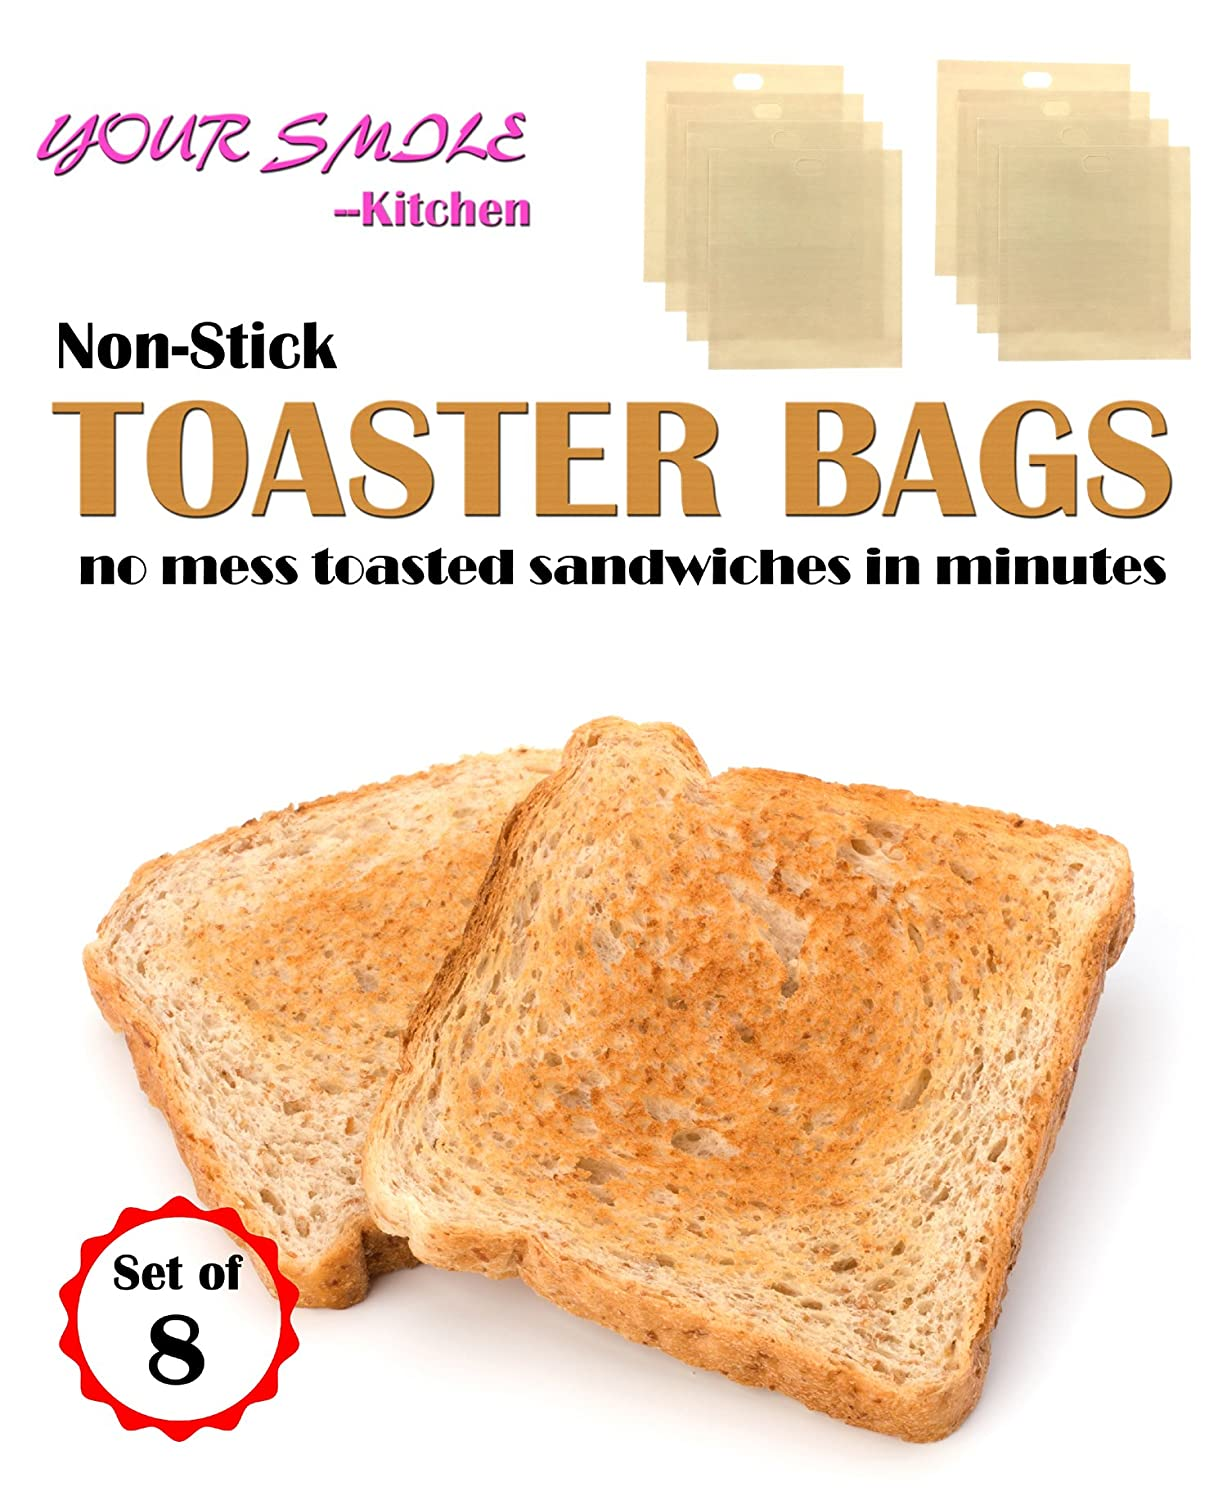 by YOUR SMILE 100/% Non Stick and Reusable Easy To Clean Perfect For Sandwiches Hot Dogs Chicken Fish Vegetables Panini /& Garlic Toast LONGRIVER 17050801 Toaster Bags Set of 8